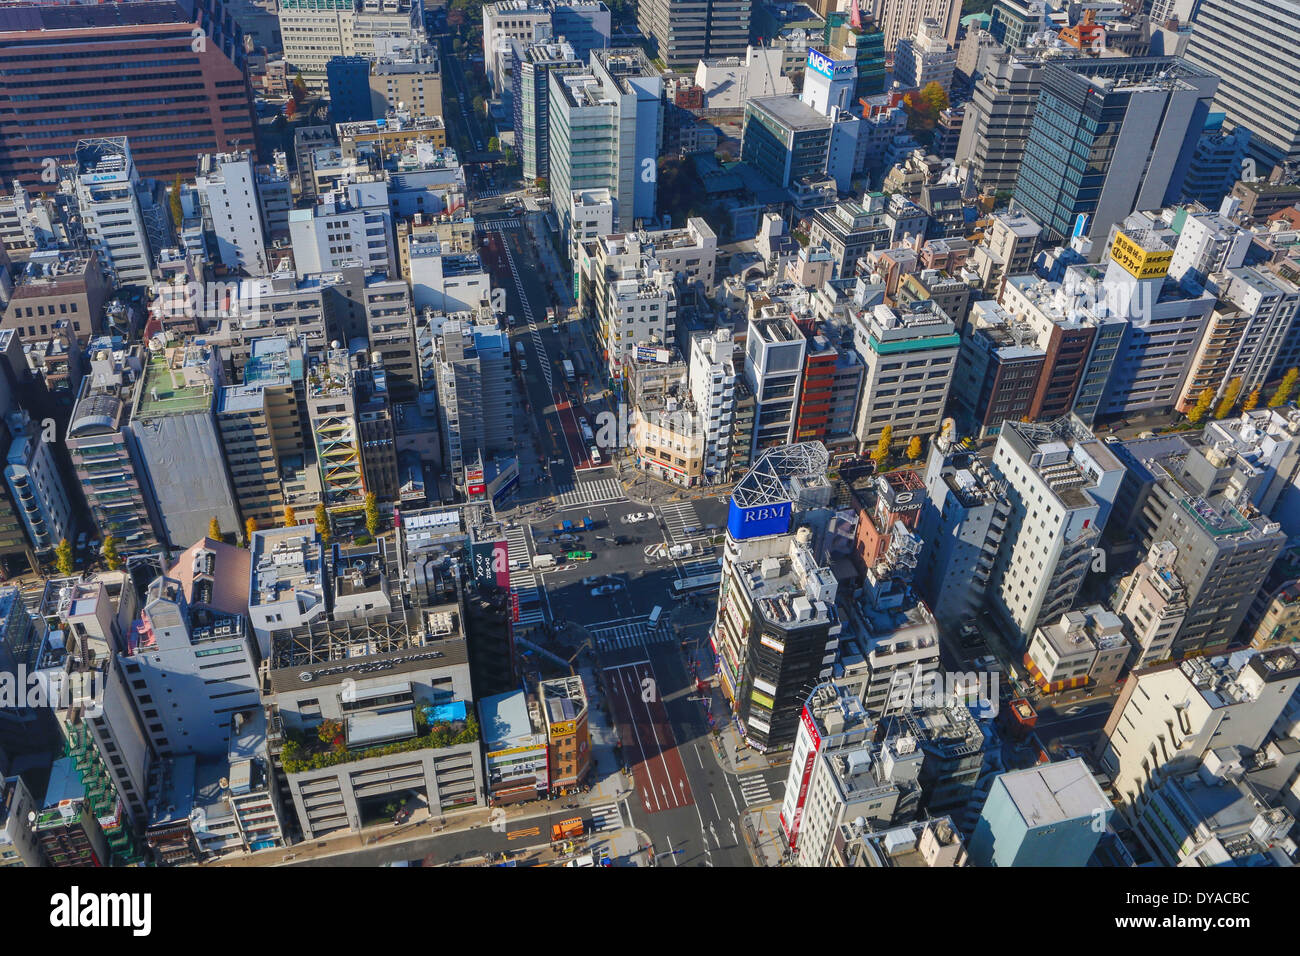 Japan, Asia, Tokyo, City, Daimon, Minato Ku, aerial, architecture, city, crossing, perspective, travel, urban Stock Photo